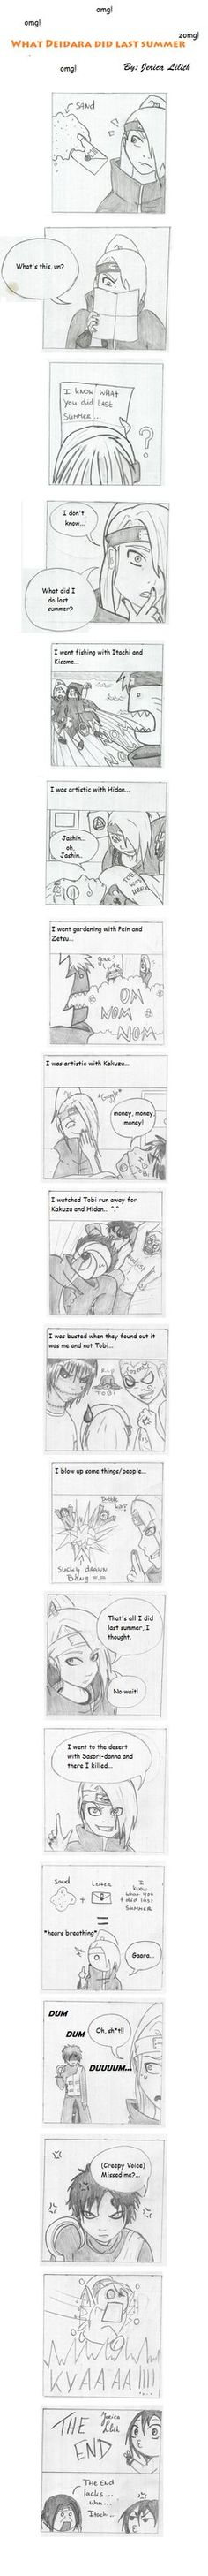 Comic 7: Comic 5: Admit you where a little bit shocked.... Don't lie! I know you where!!! =3= Don't be shyyy lol! I don't draw this way alot, no worries lol. But this is totally Hidan, don't you th...